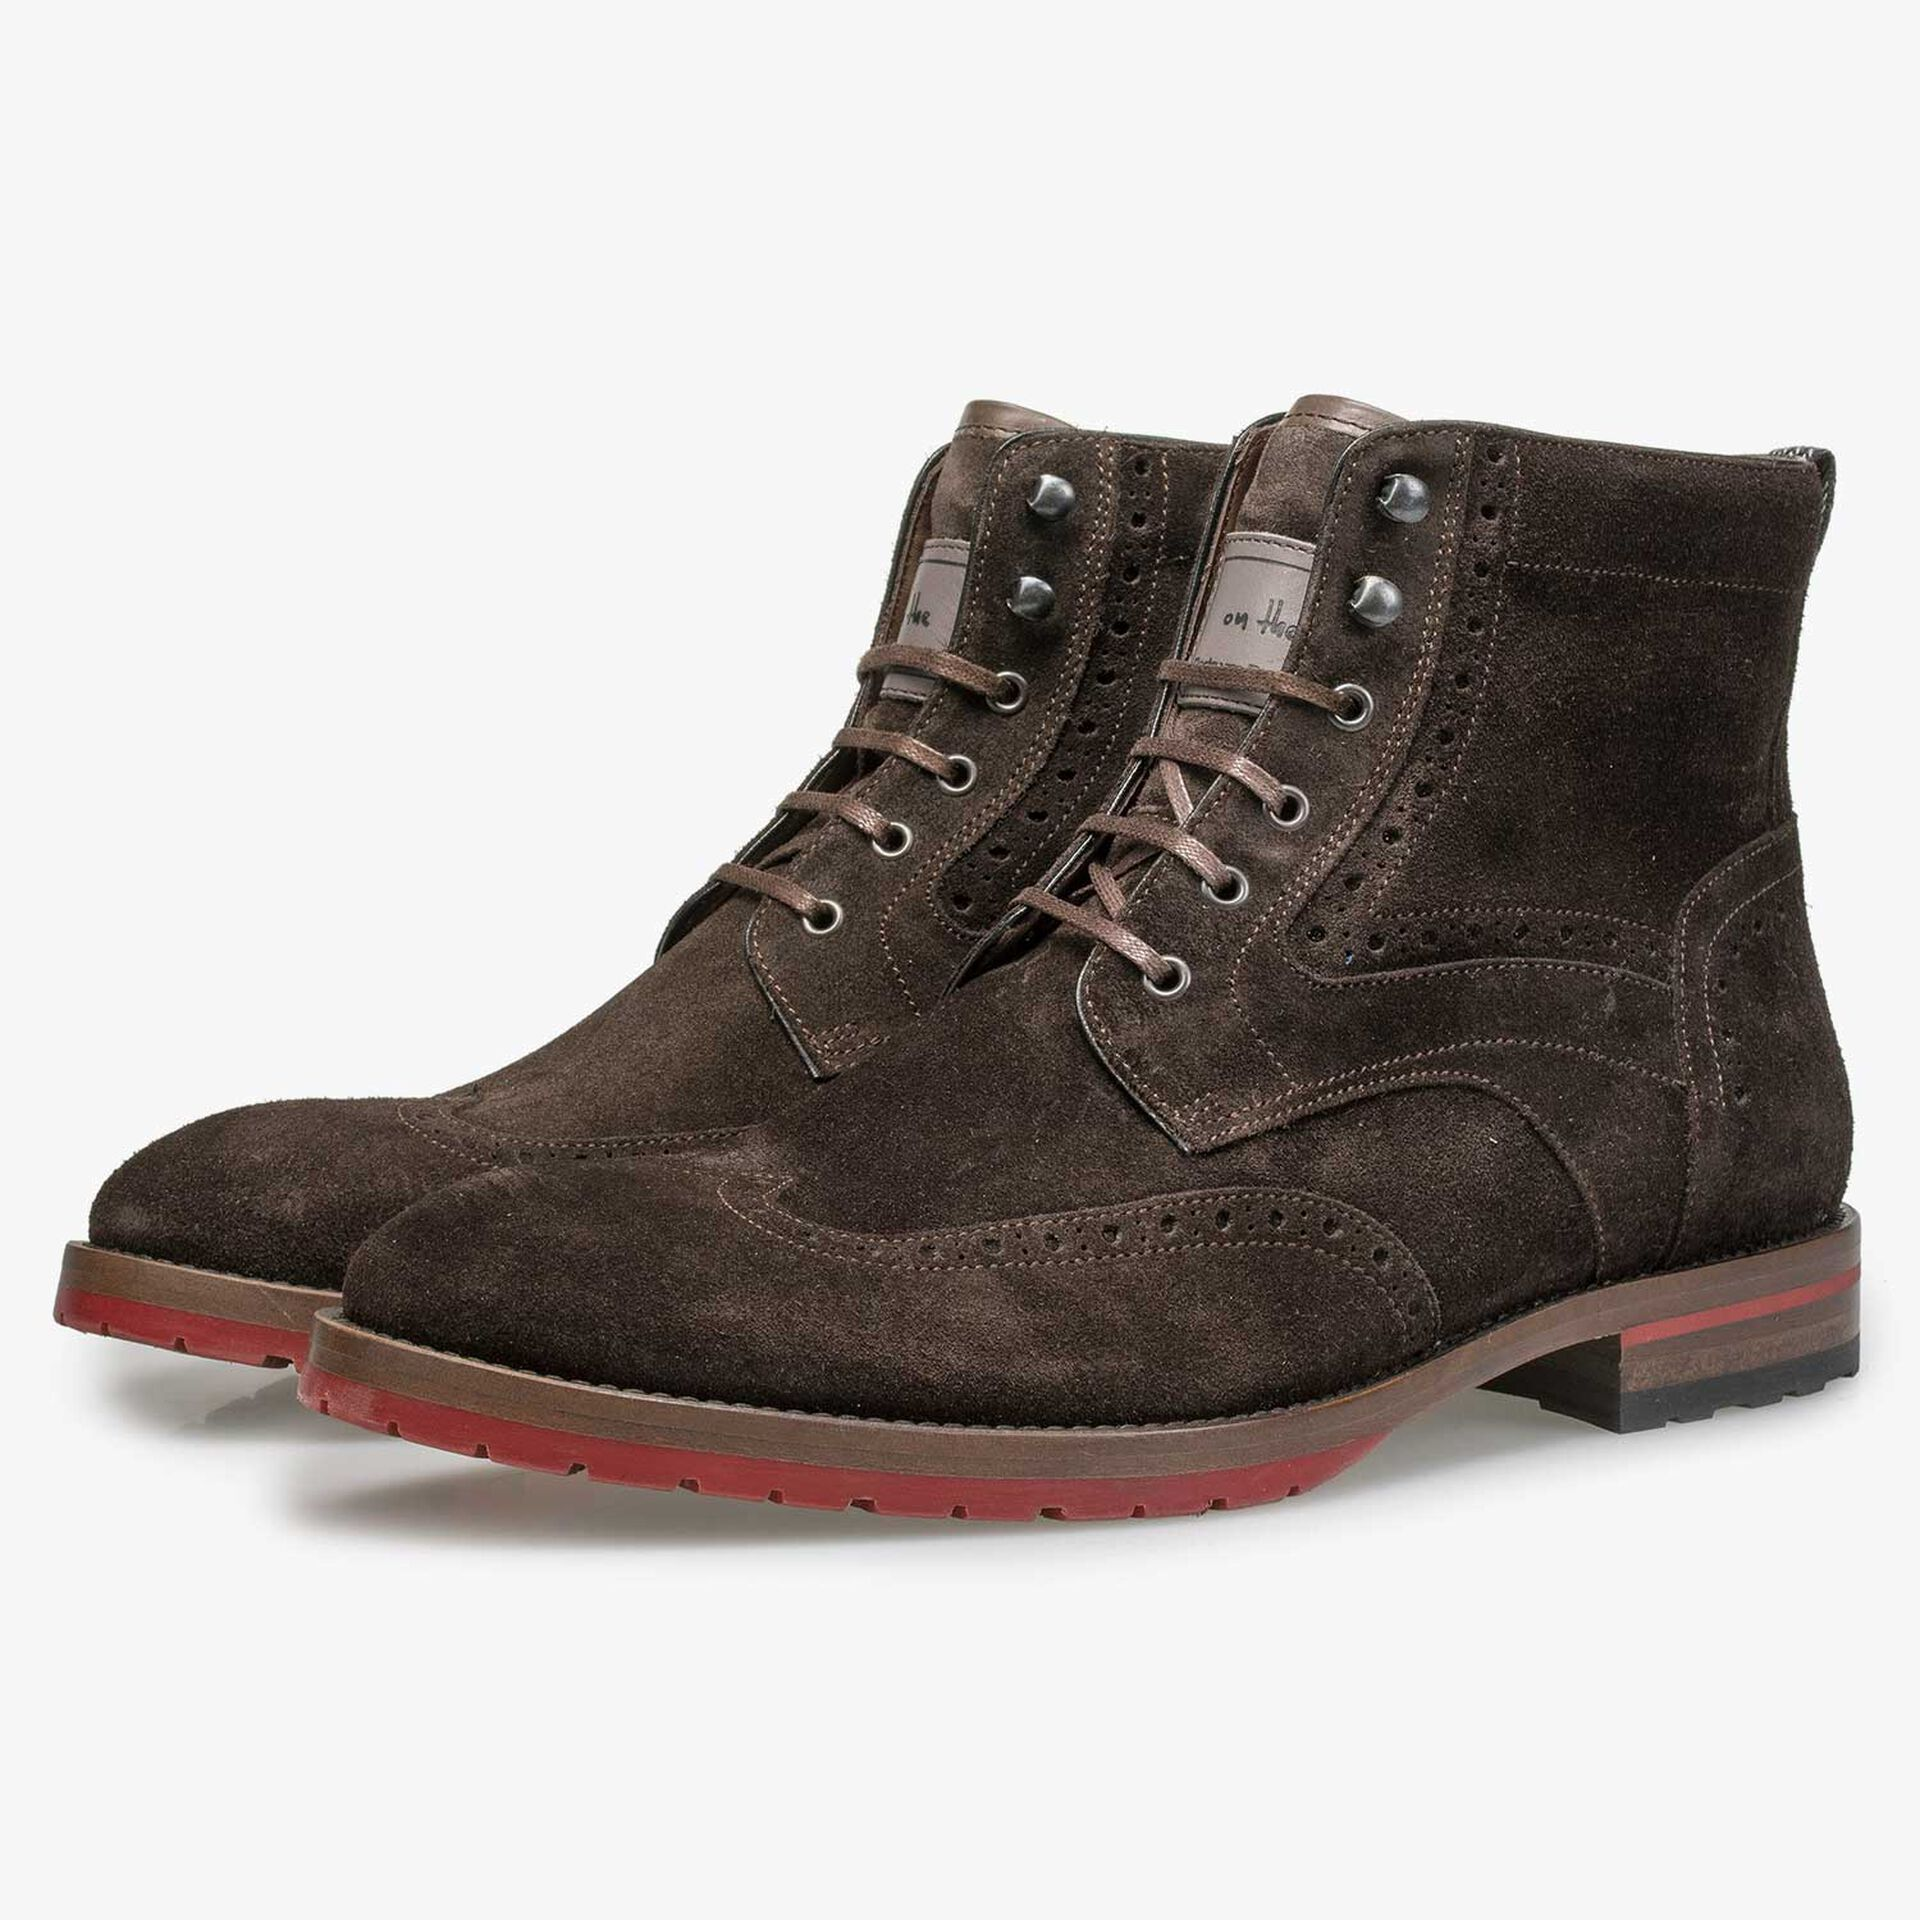 Brown suede leather brogue lace boot